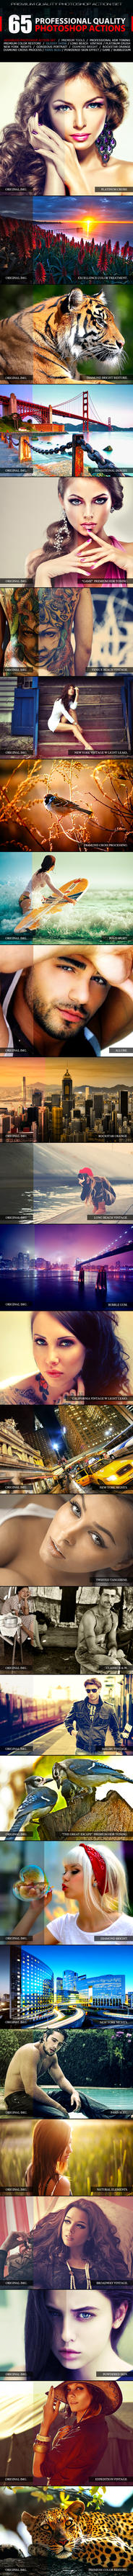 65 Professional Quality Actions by SixStarStudio